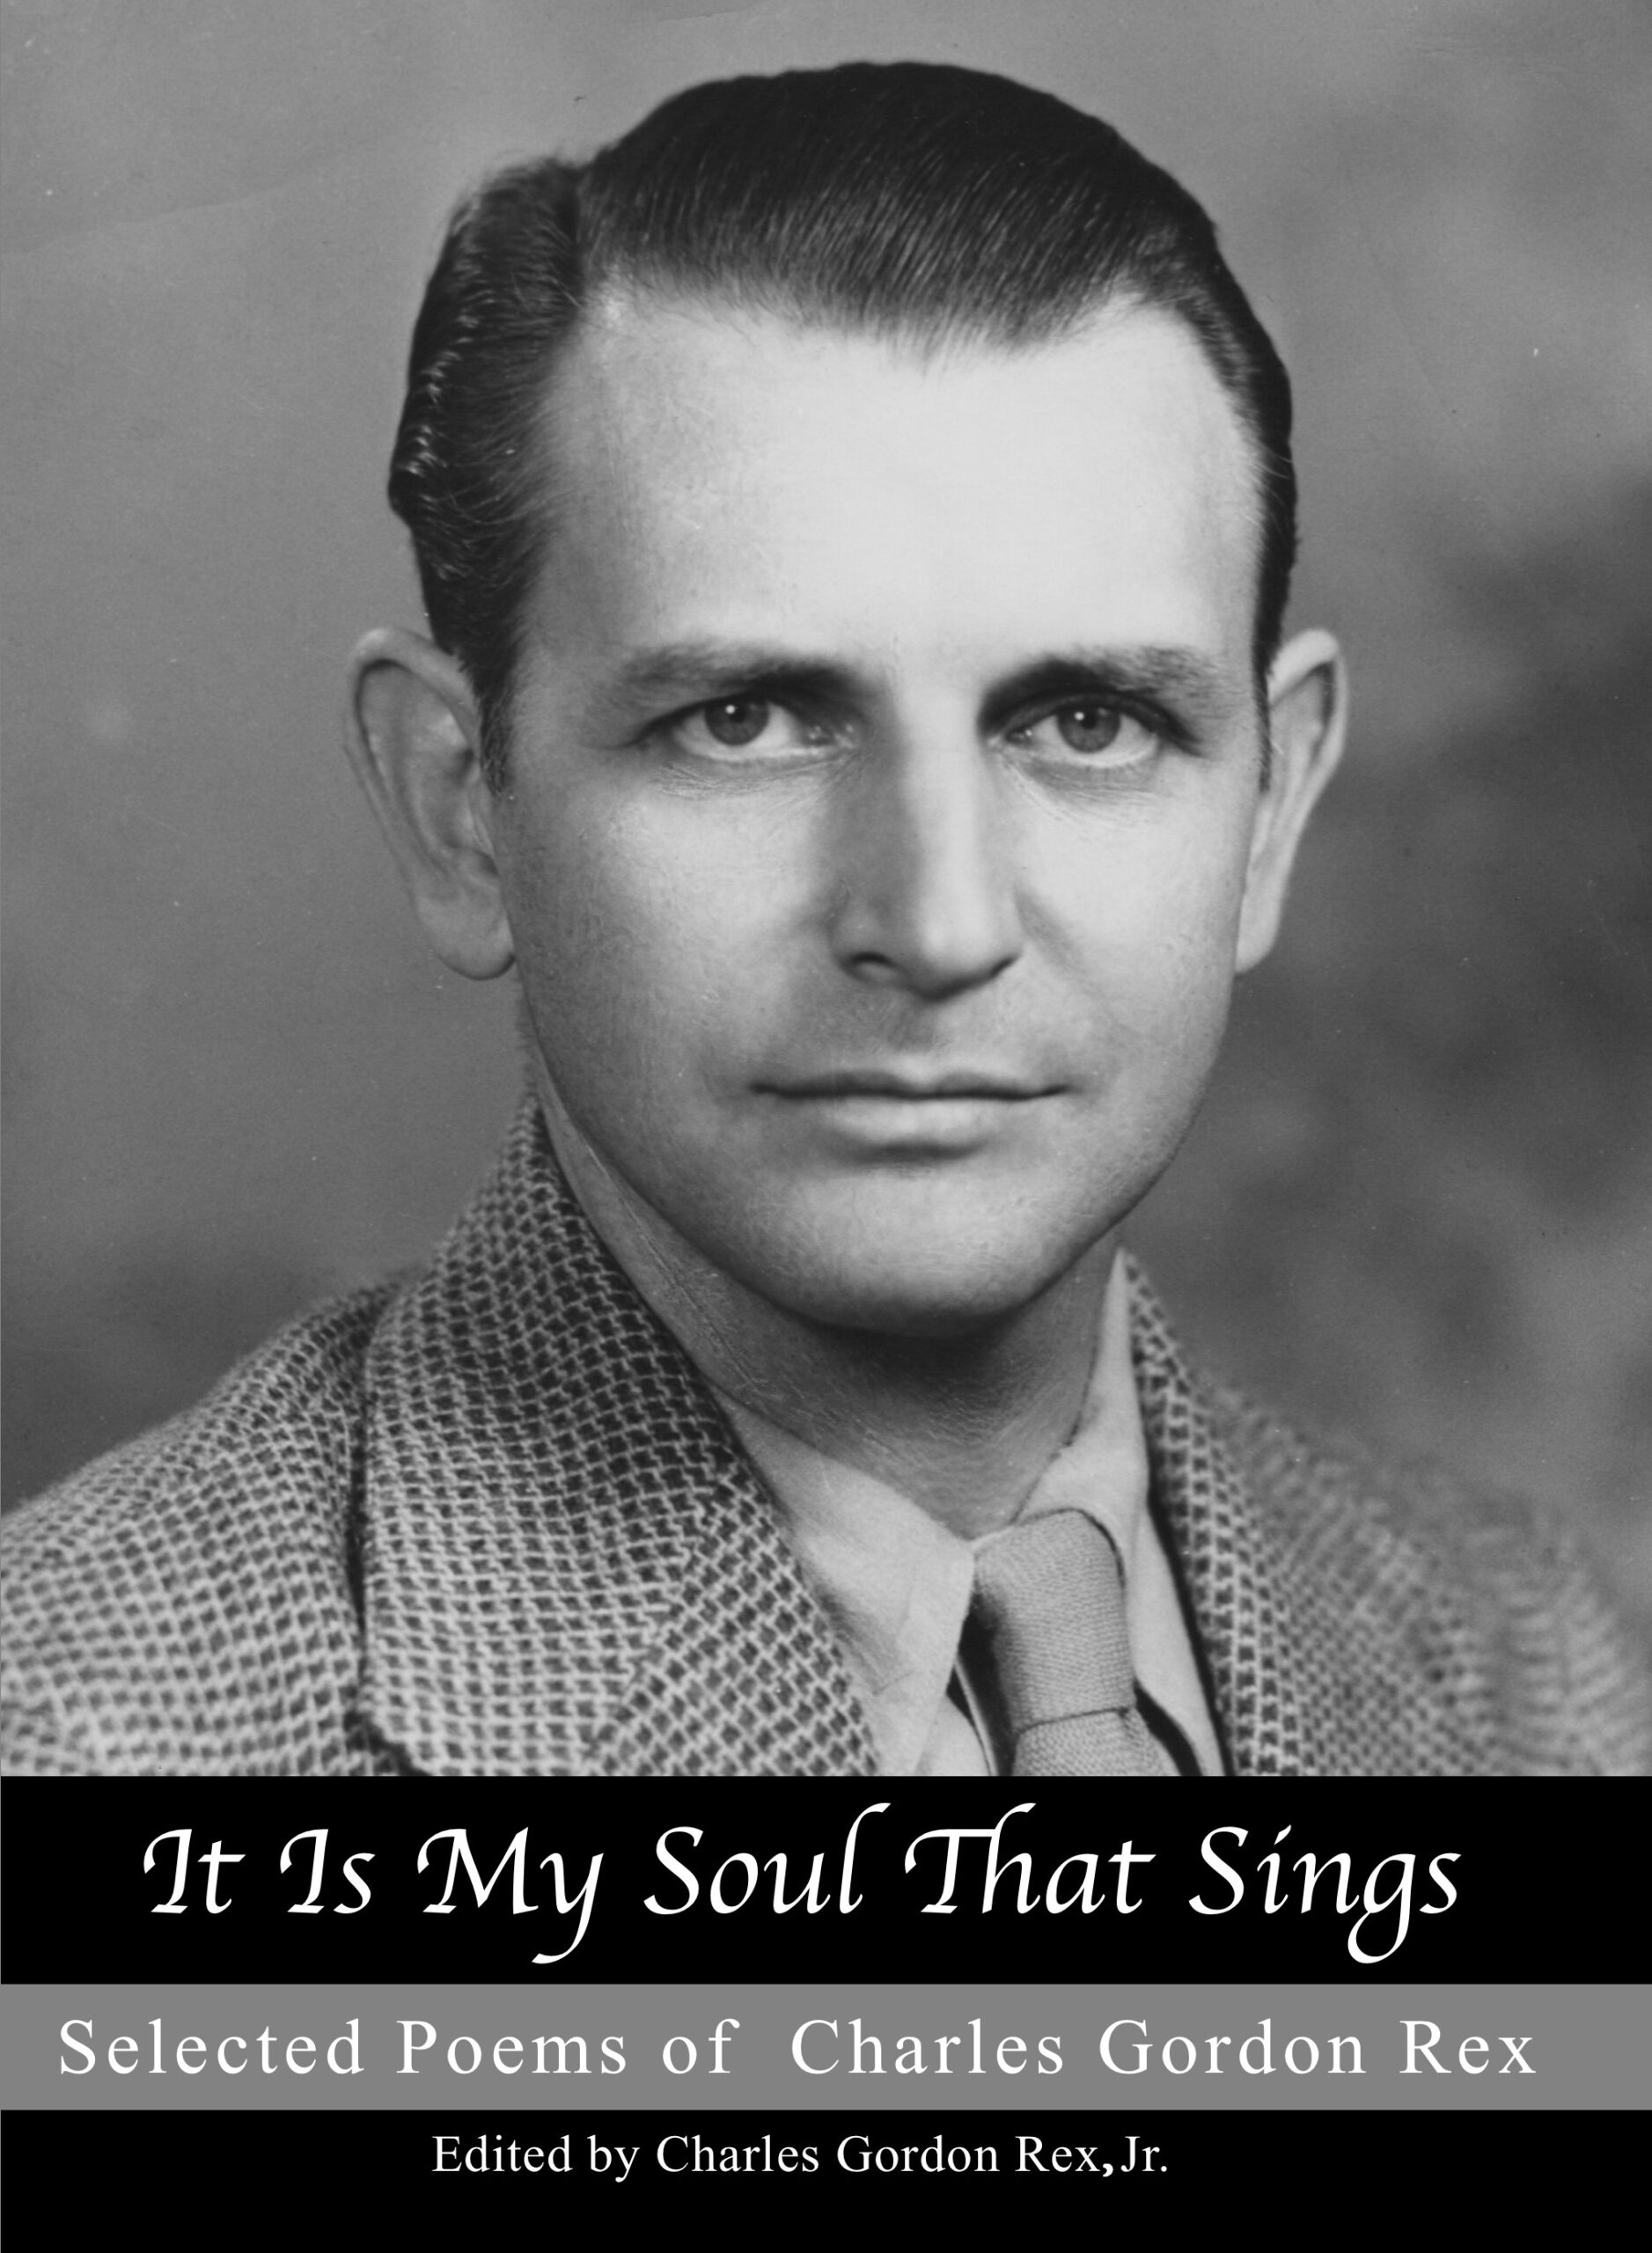 It is My Soul that Sings: Selected Poems of Charles Gordon Rex